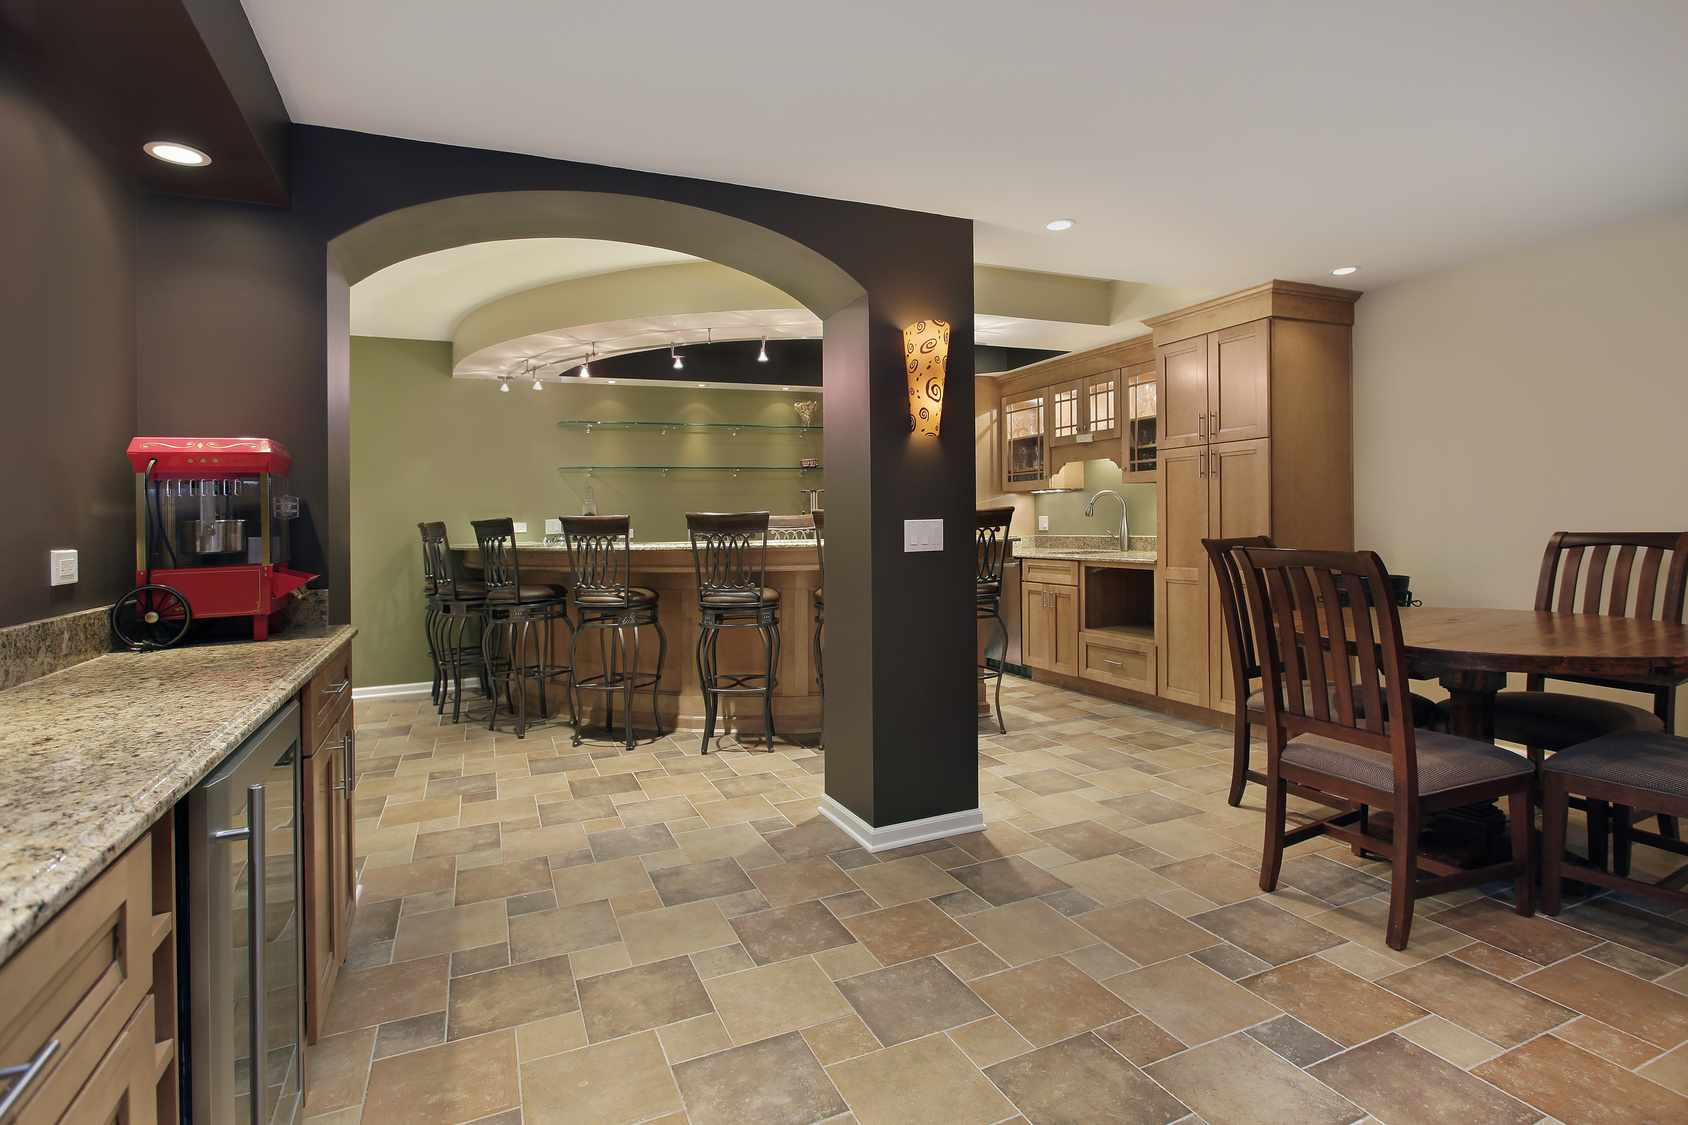 Basement Remodel in Plainfield, IL - JW Construction & Design Studio Services